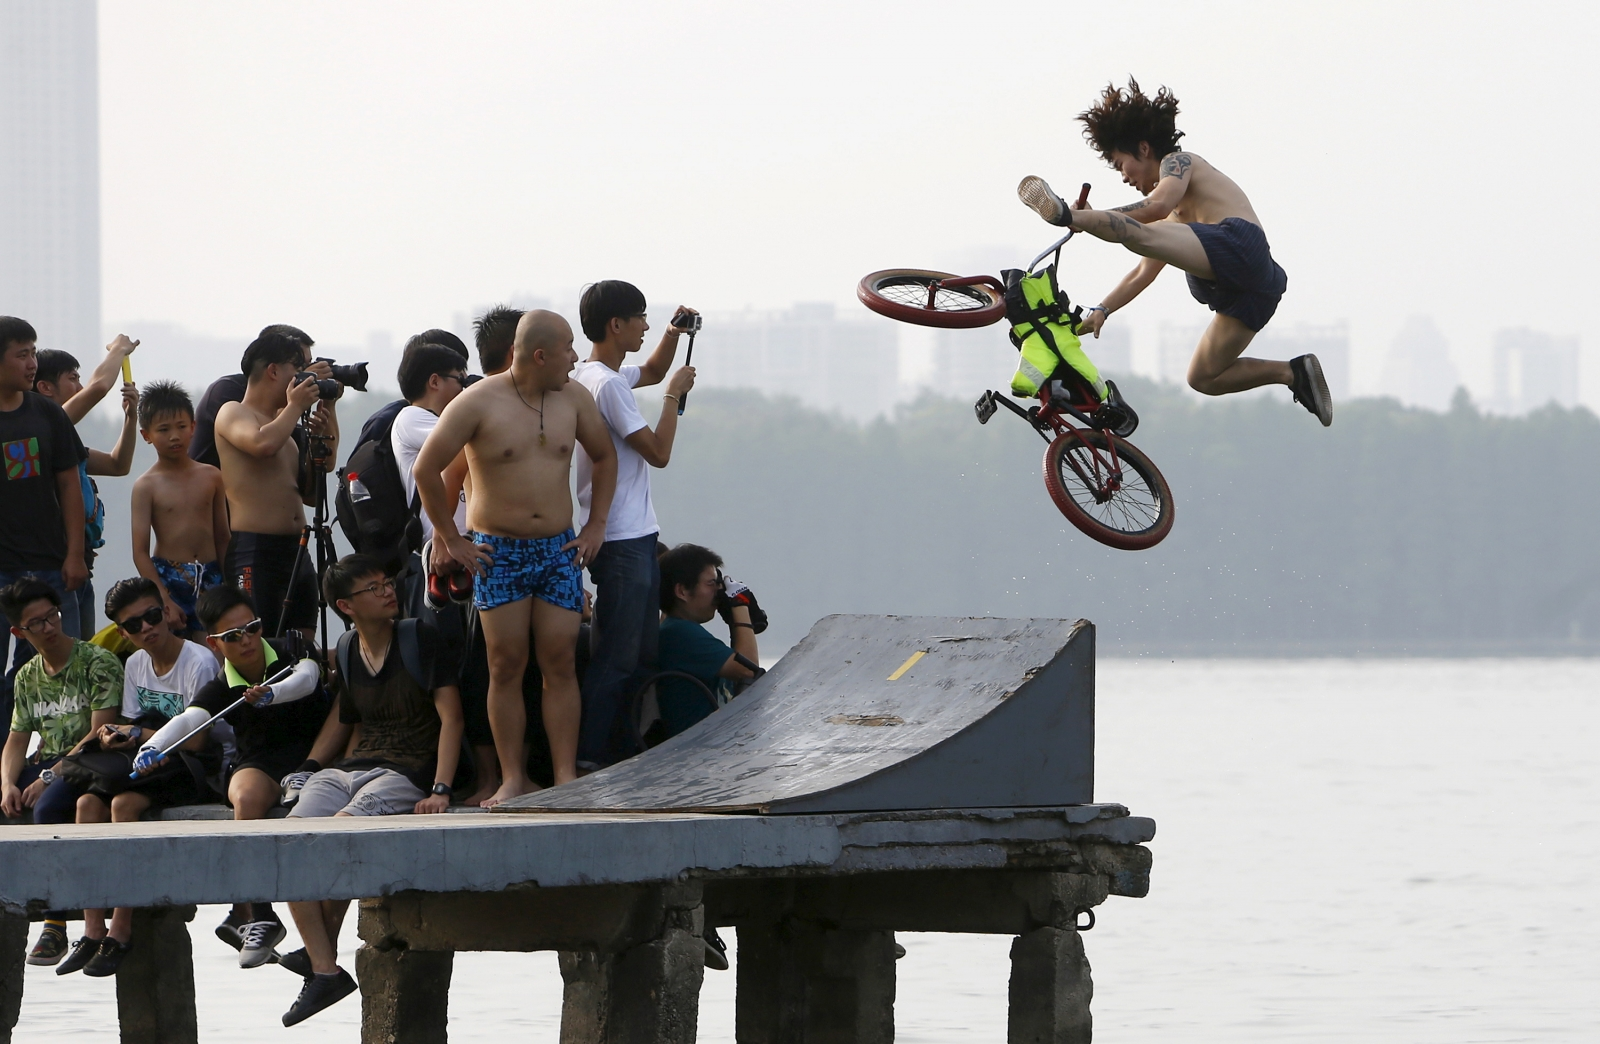 Chinese and extreme sports